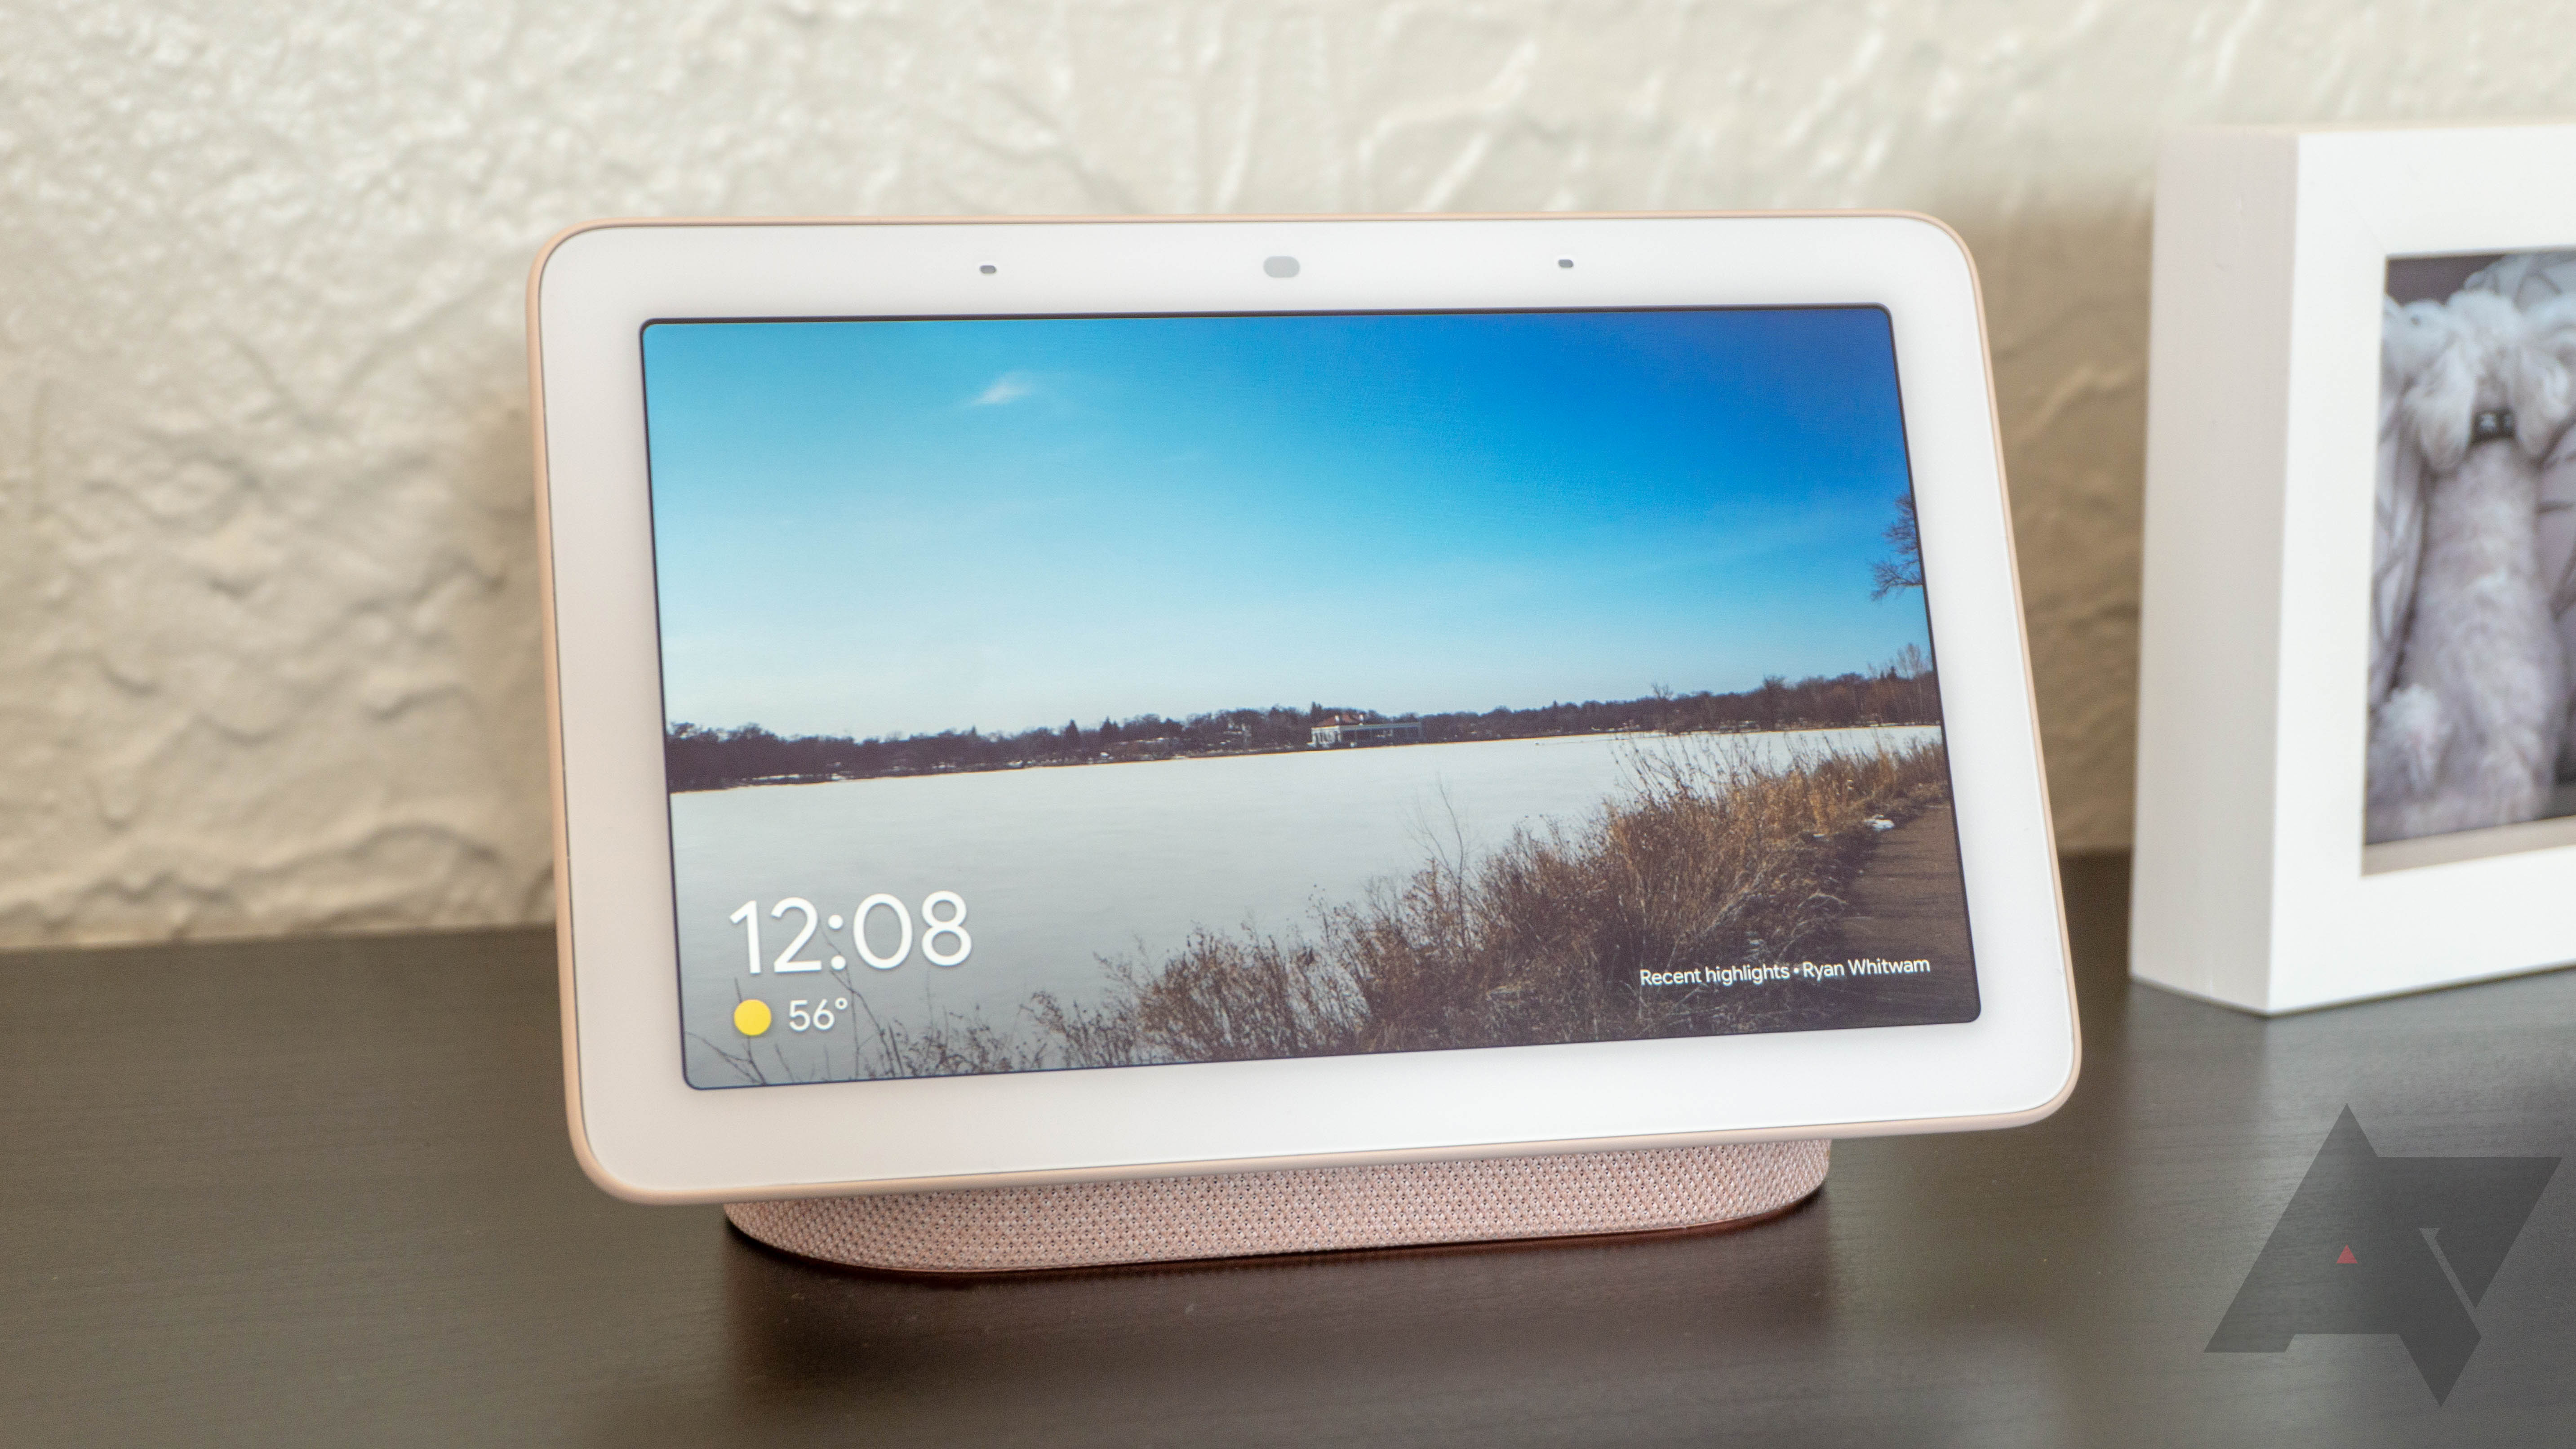 Monday deals: Save big on Google Nest Hub, plus discounts on